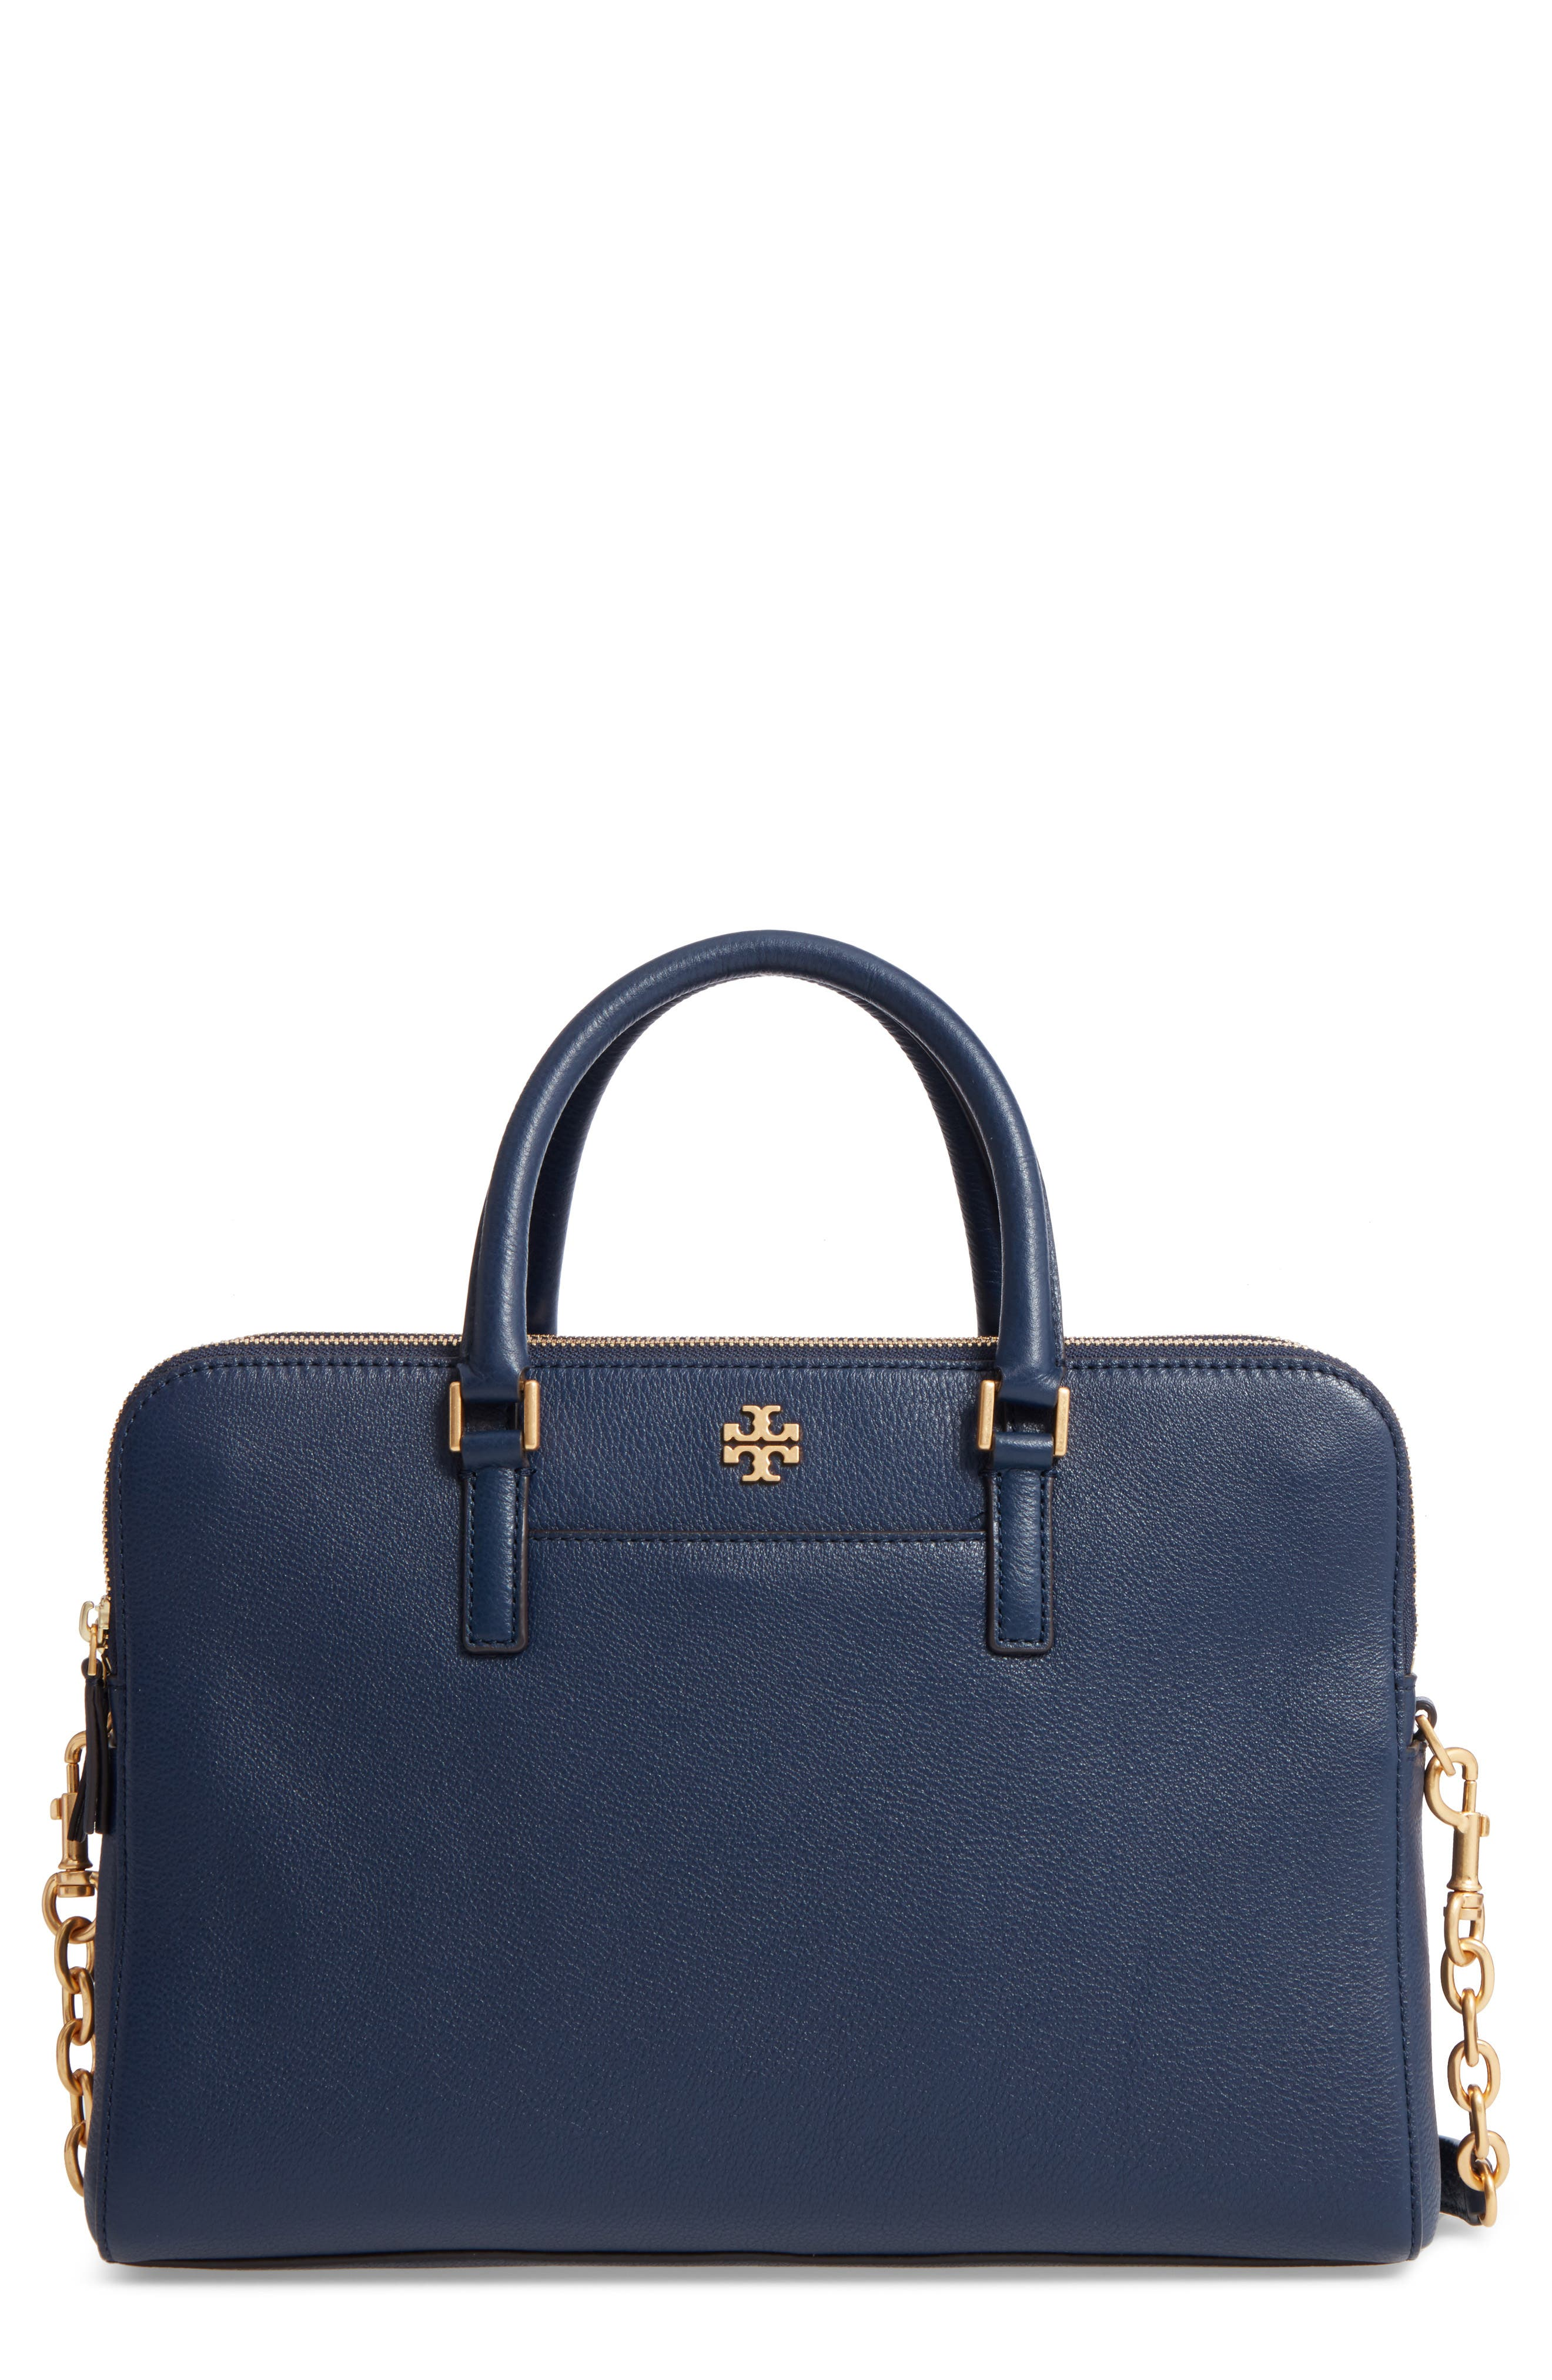 TORY BURCH Monroe Leather Satchel